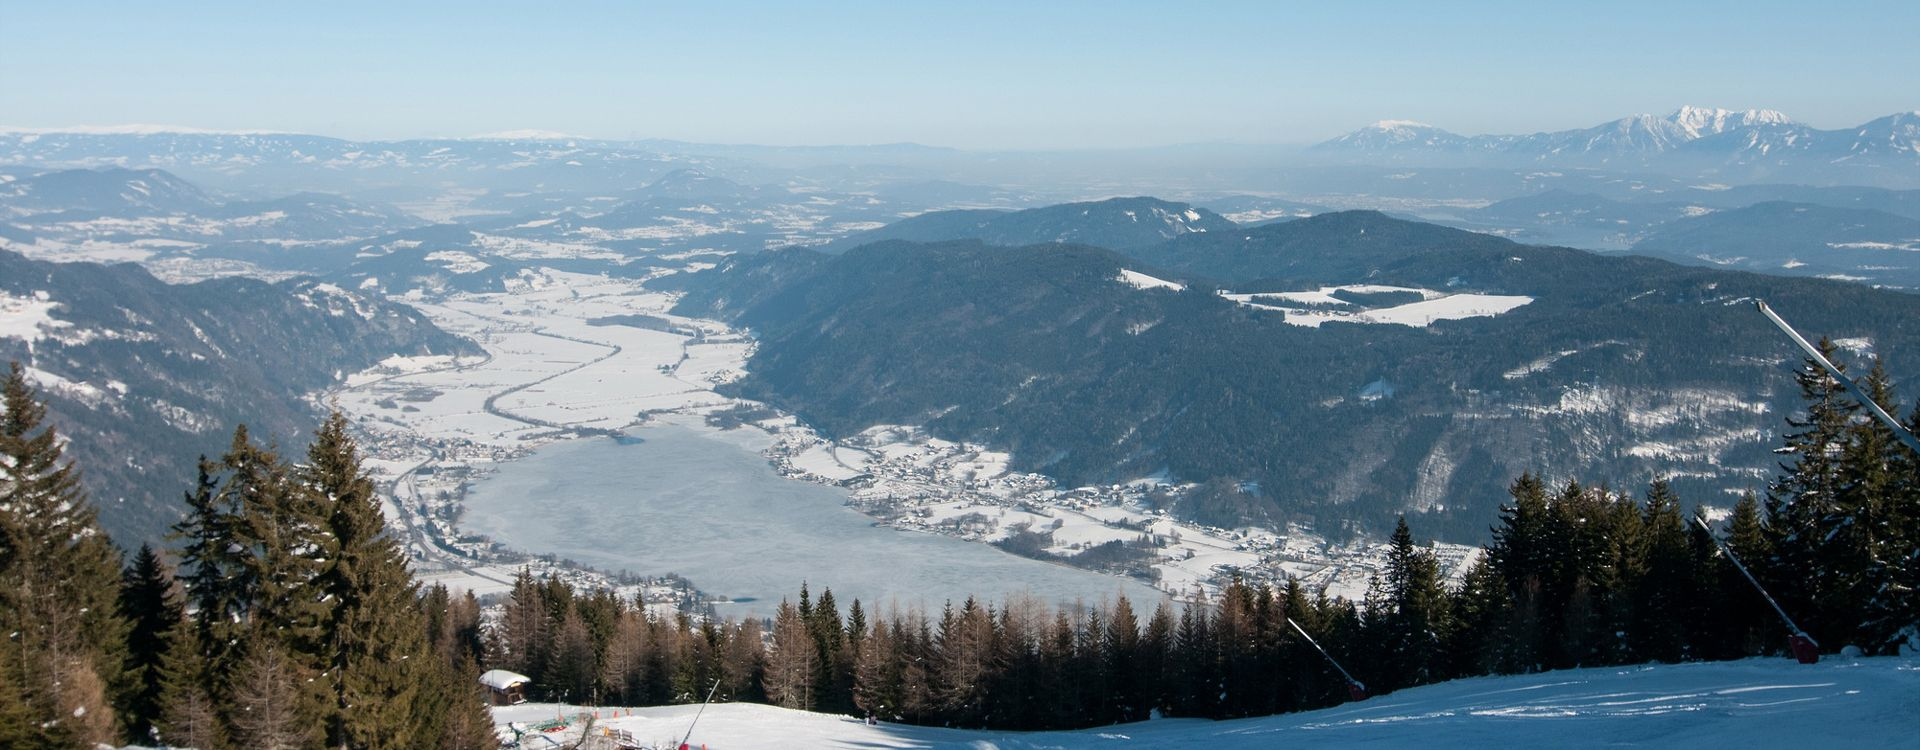 Winterpanorama Ossiachersee